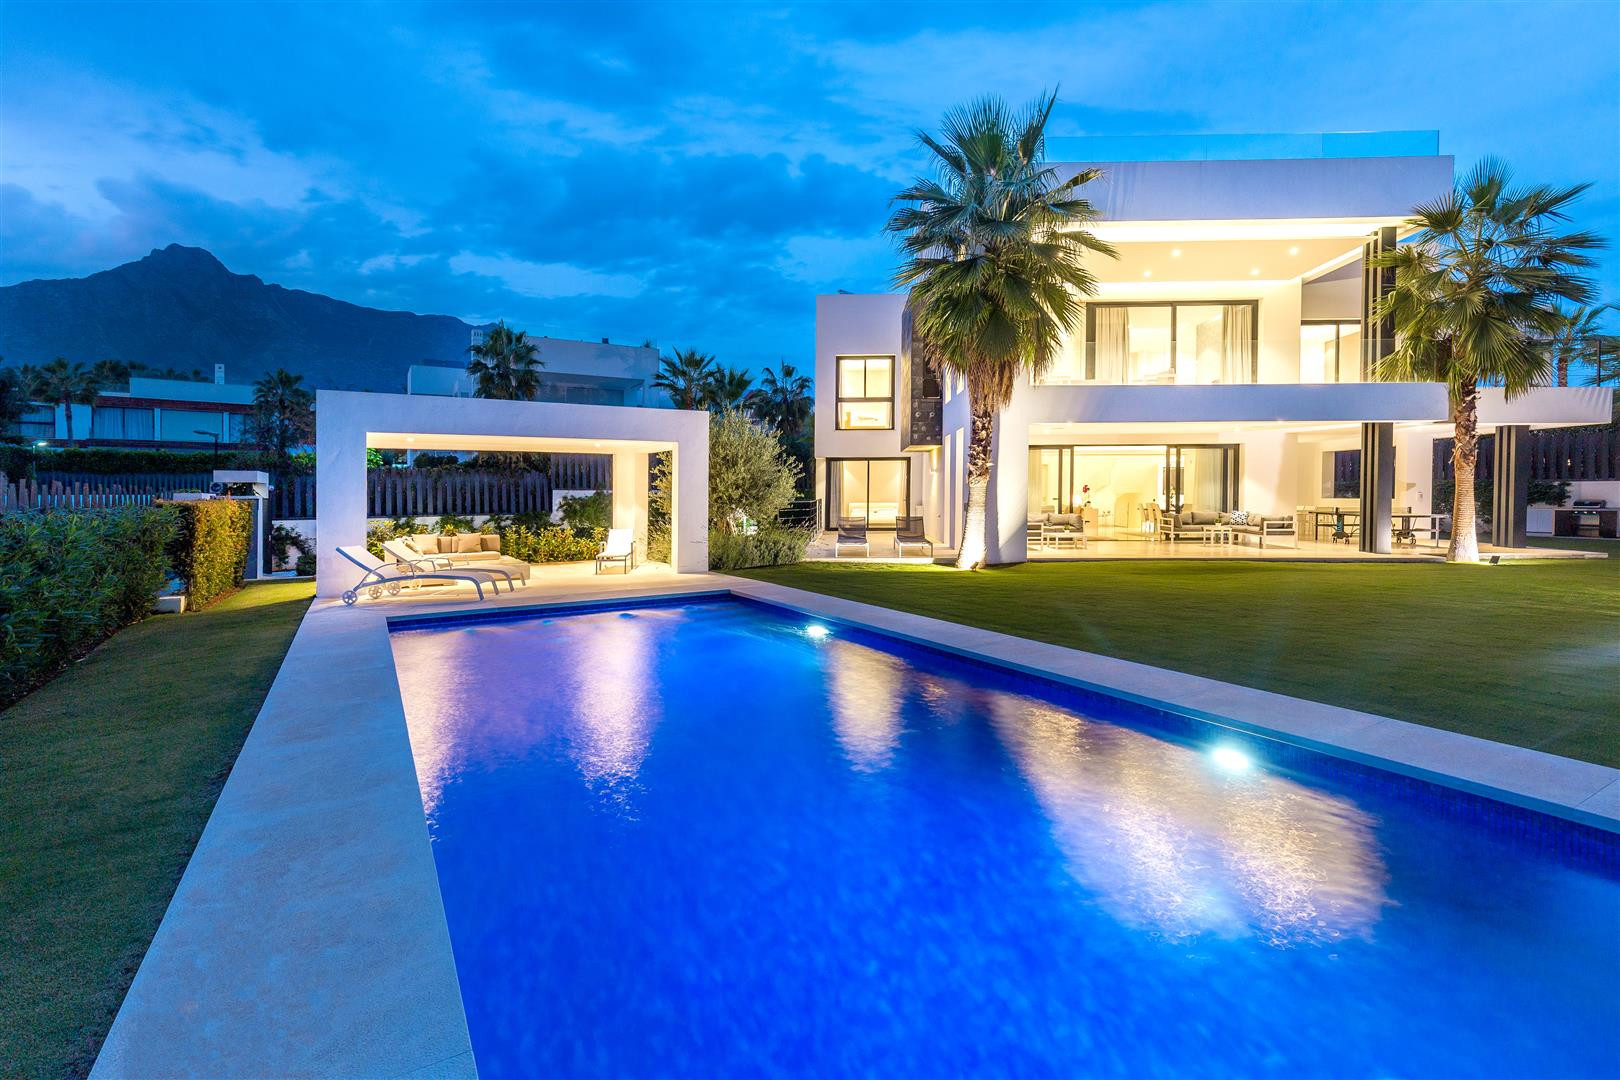 REDUCED PRICE! Incredible south-facing villa in gated community on Marbella's Golden Mile